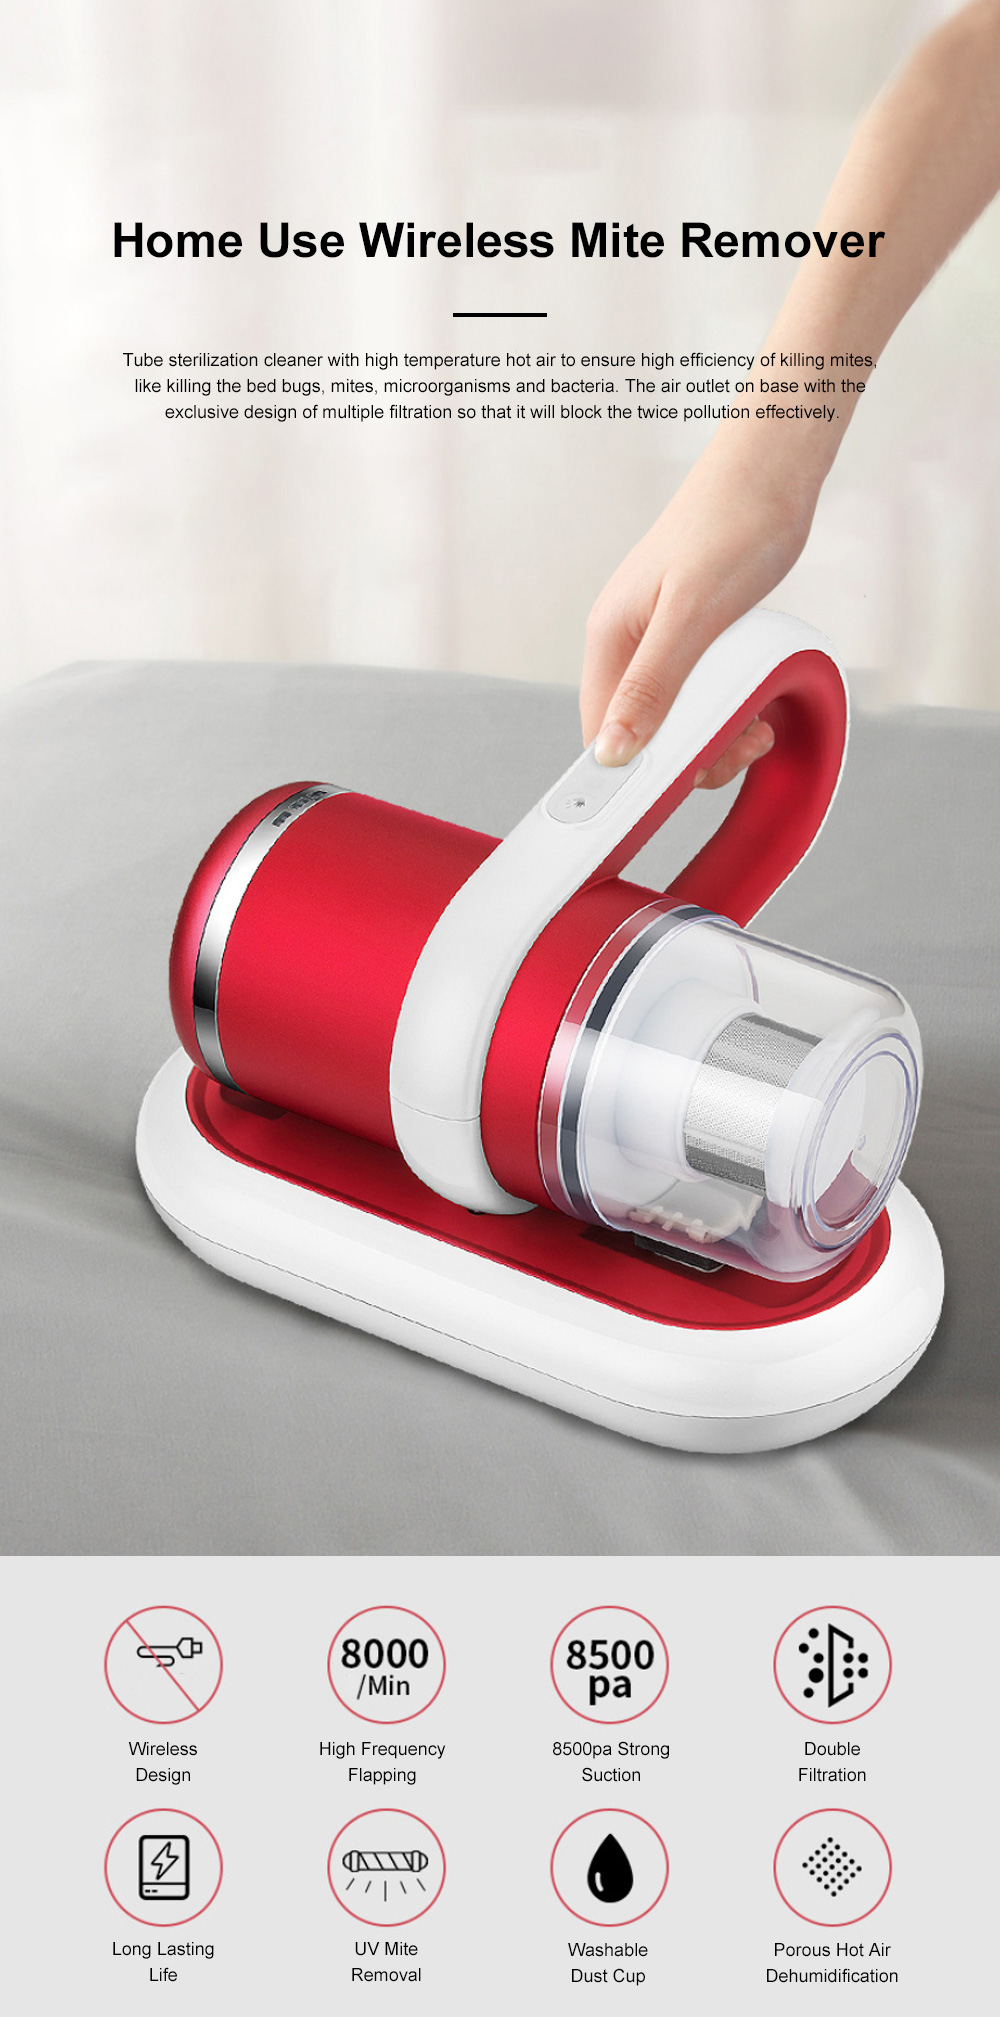 Home Use Wireless Mite Remover Handheld UV Sterilization Cleaner for Bed Bedroom Sofa Clothes Anti Dust Mite Device 0